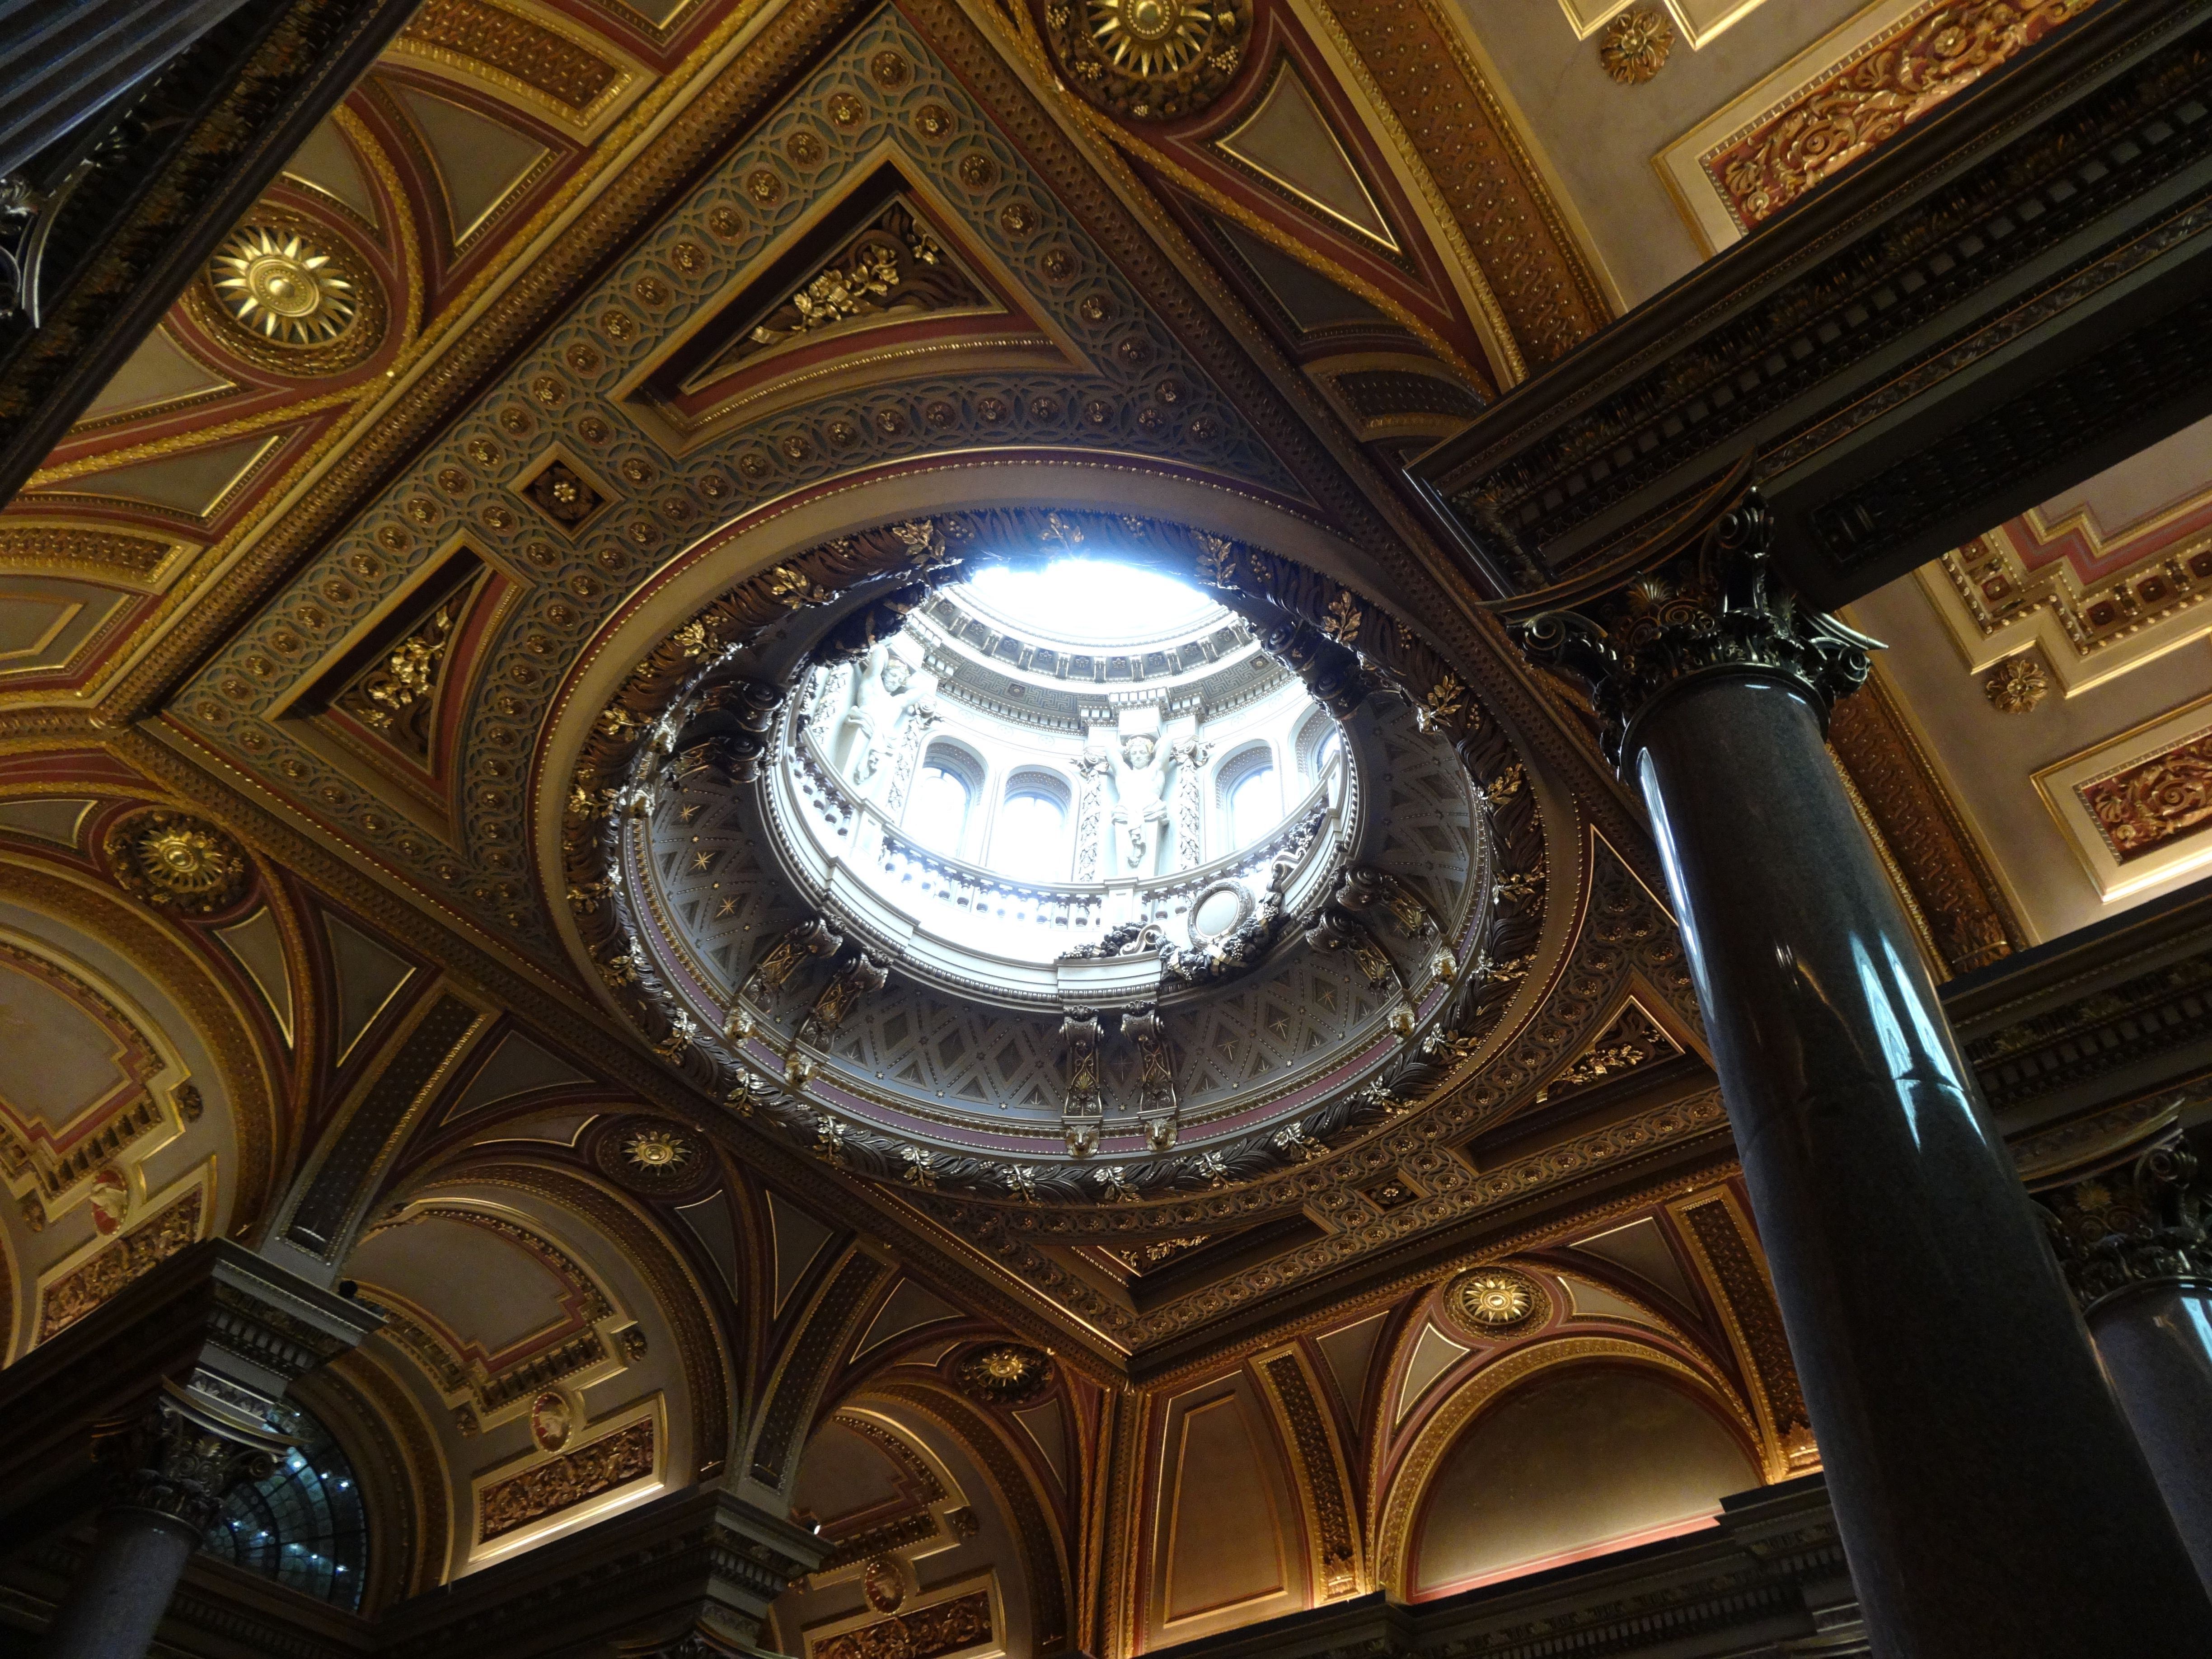 Cambridge UK - Dome in the fitzwilliam museum entry hall